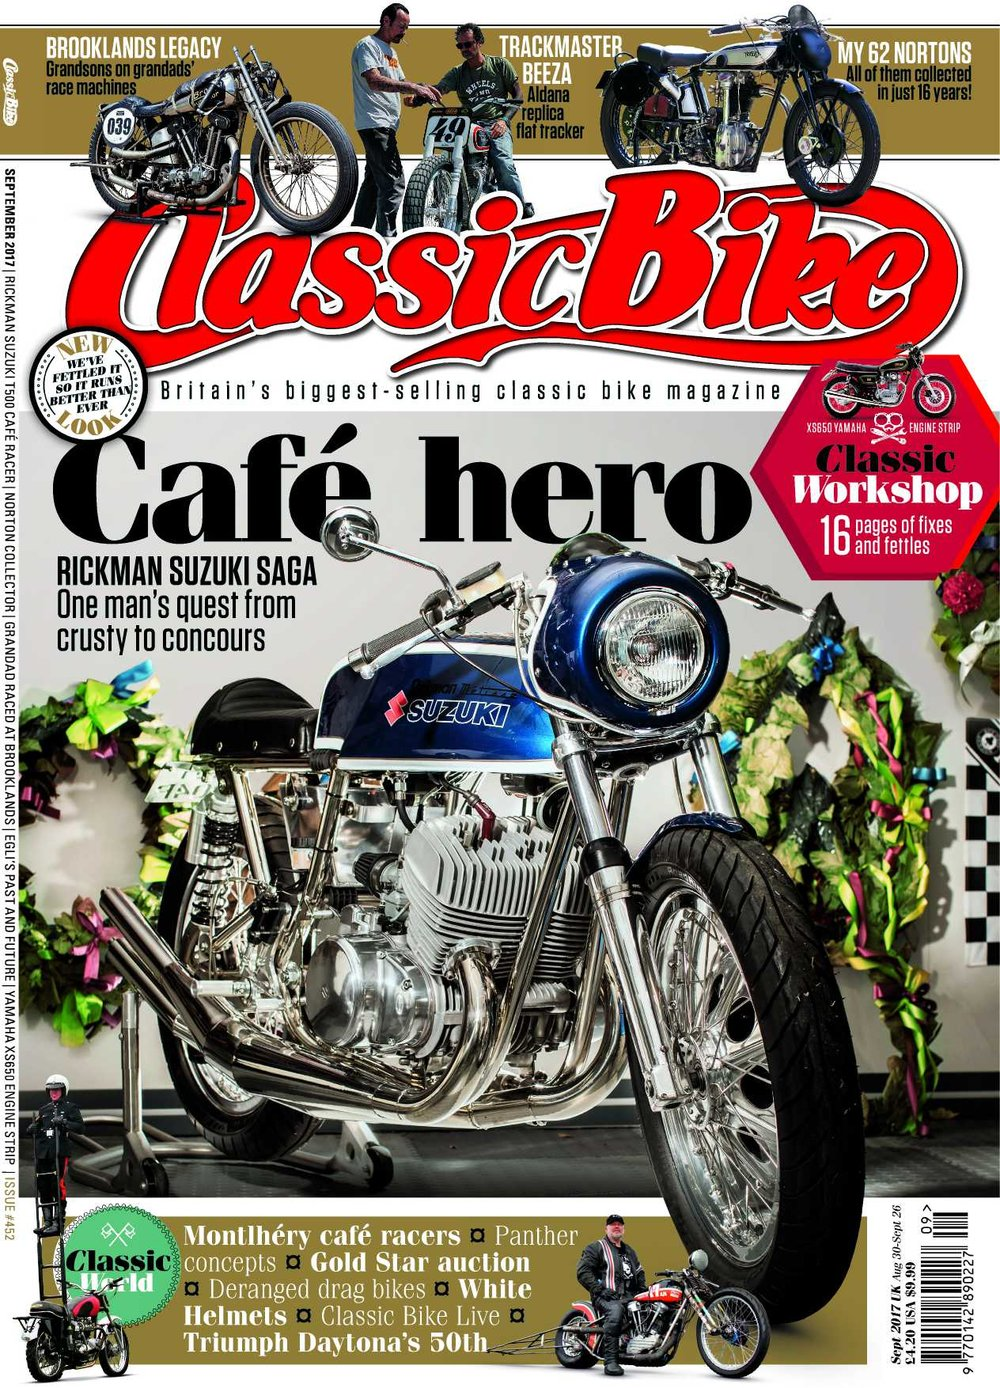 Classic Bike magazine September 2017 issue